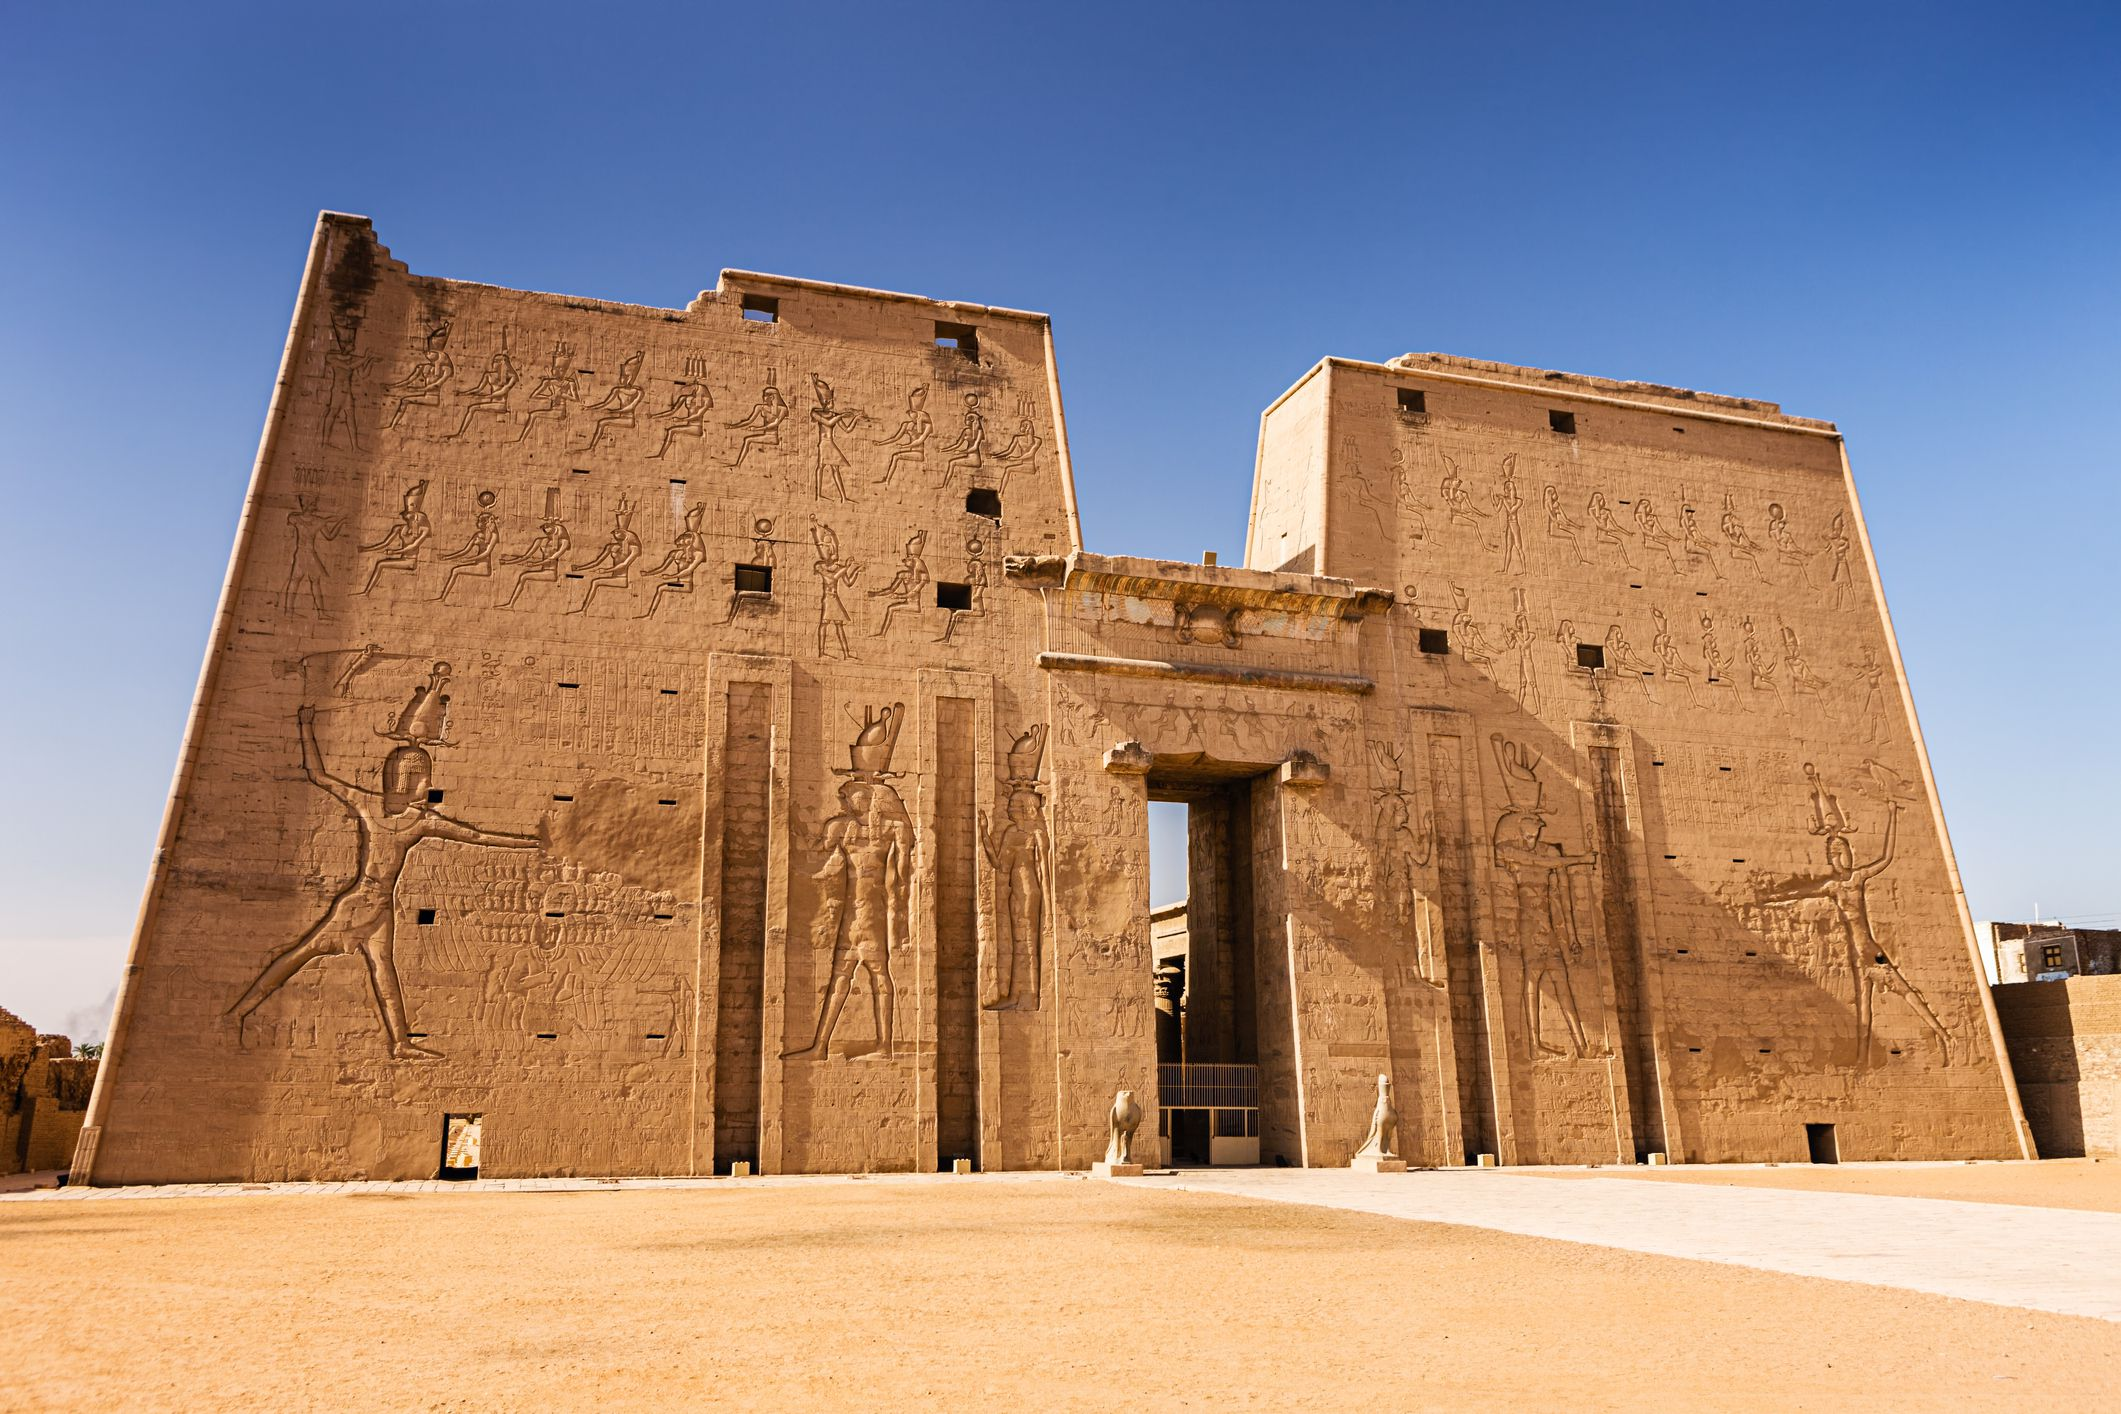 Temple of Horus at Edfu, Egypt: The Complete Guide